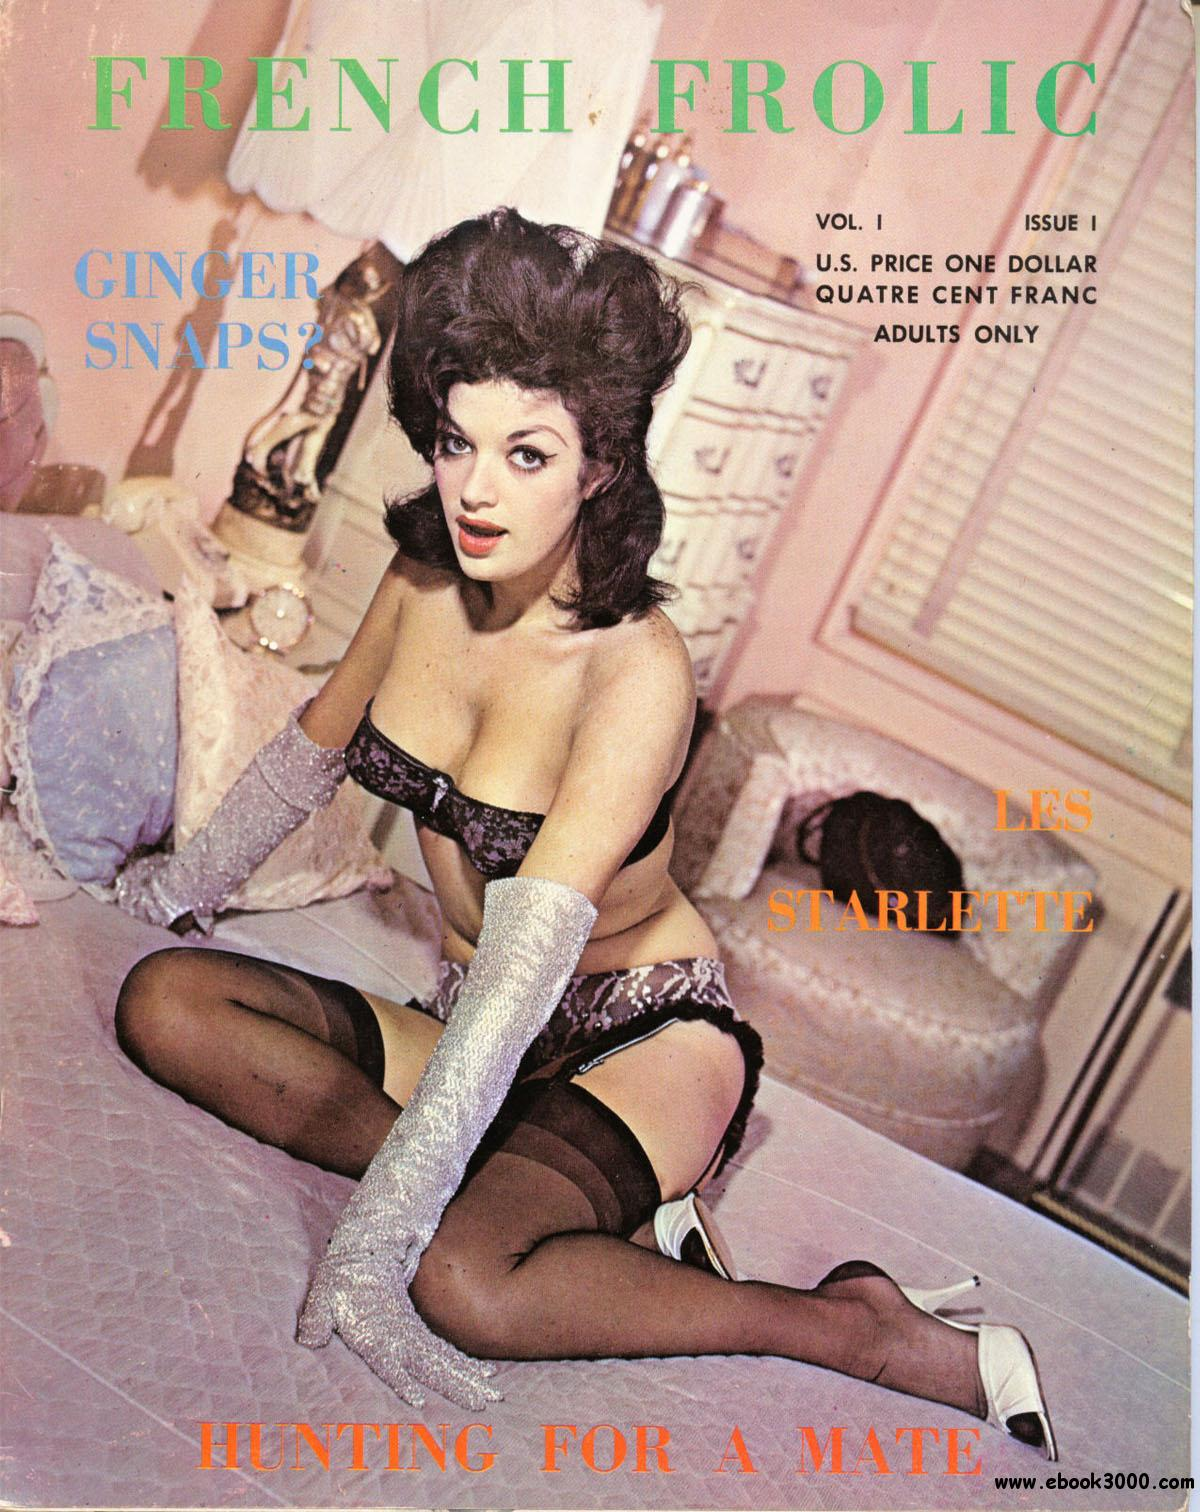 French Frolic #1 1960 free download